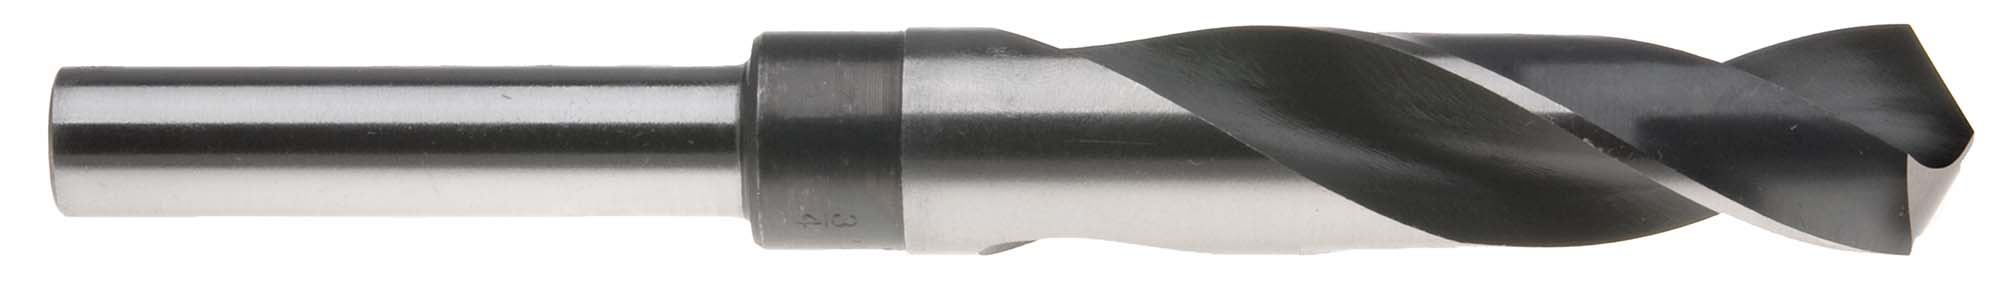 "1-1/8"" USA Drill Bit with 1/2"" Shank (S+D Type) High Speed Steel"